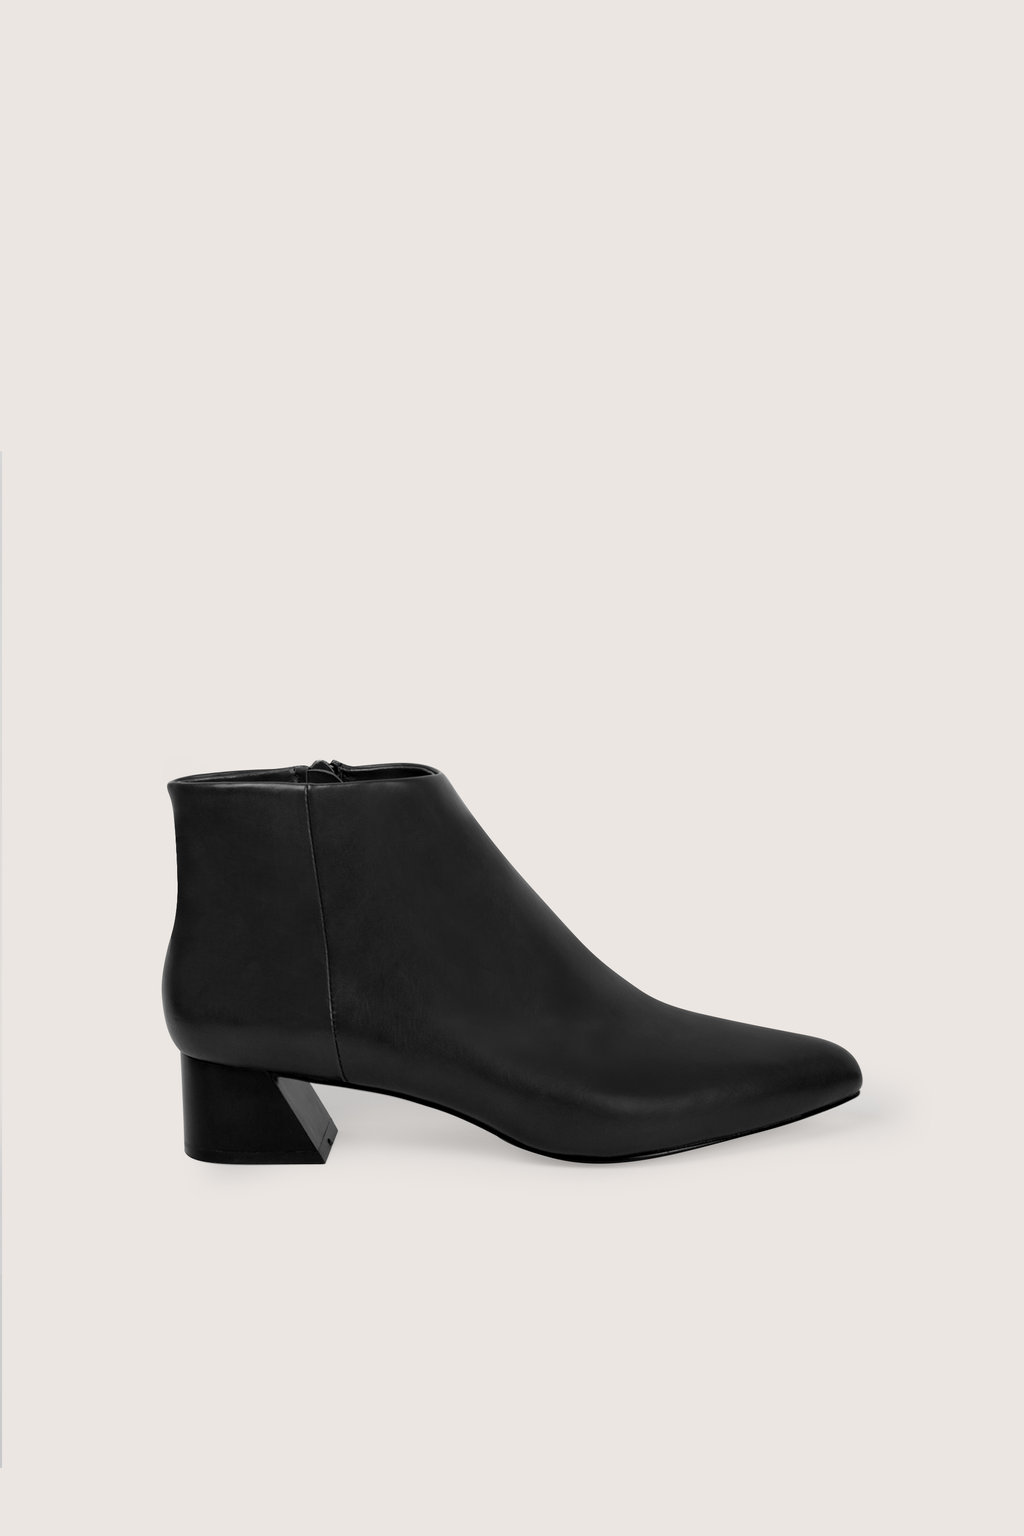 Ankle Boot 1731 Black 5